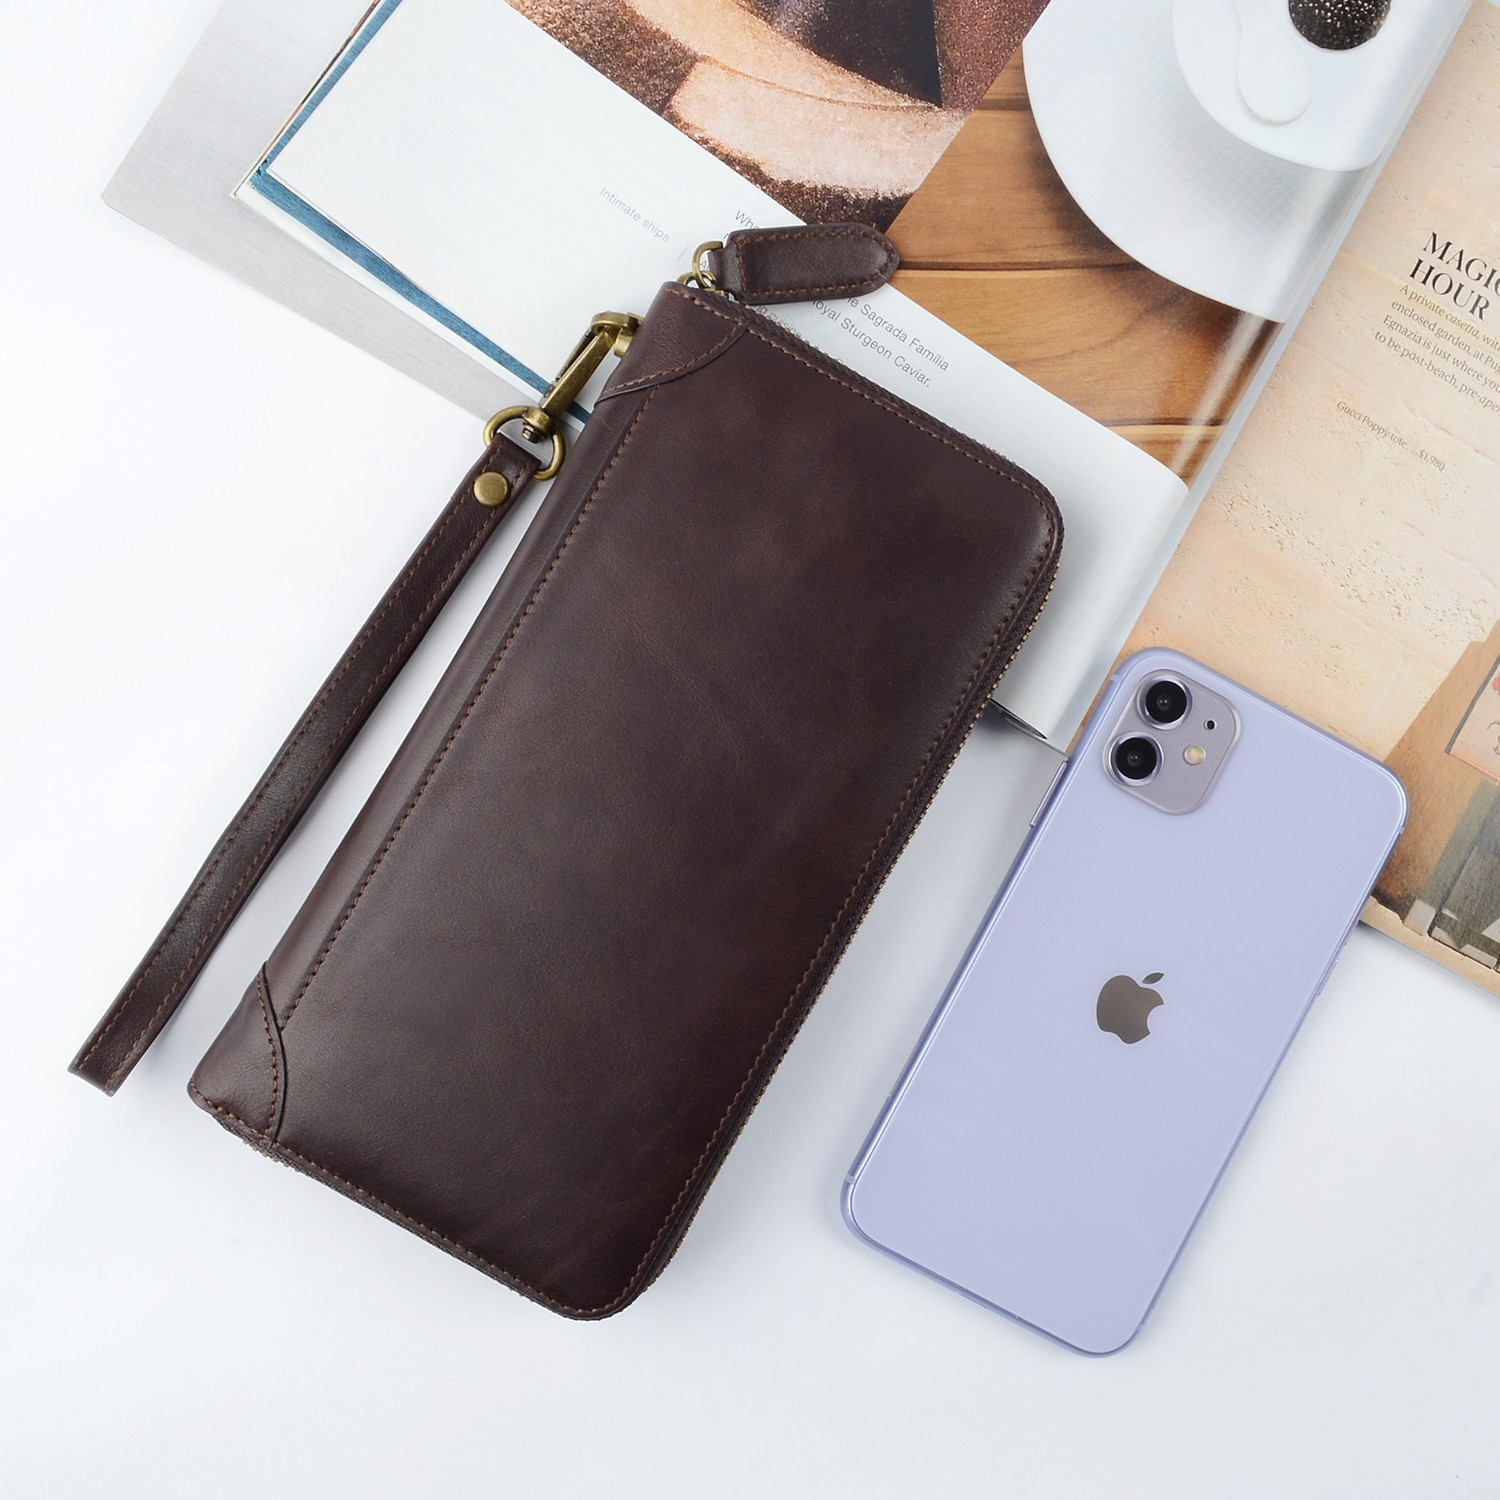 AIVI convenient leather card wallet factory for iphone 7/7 plus-5